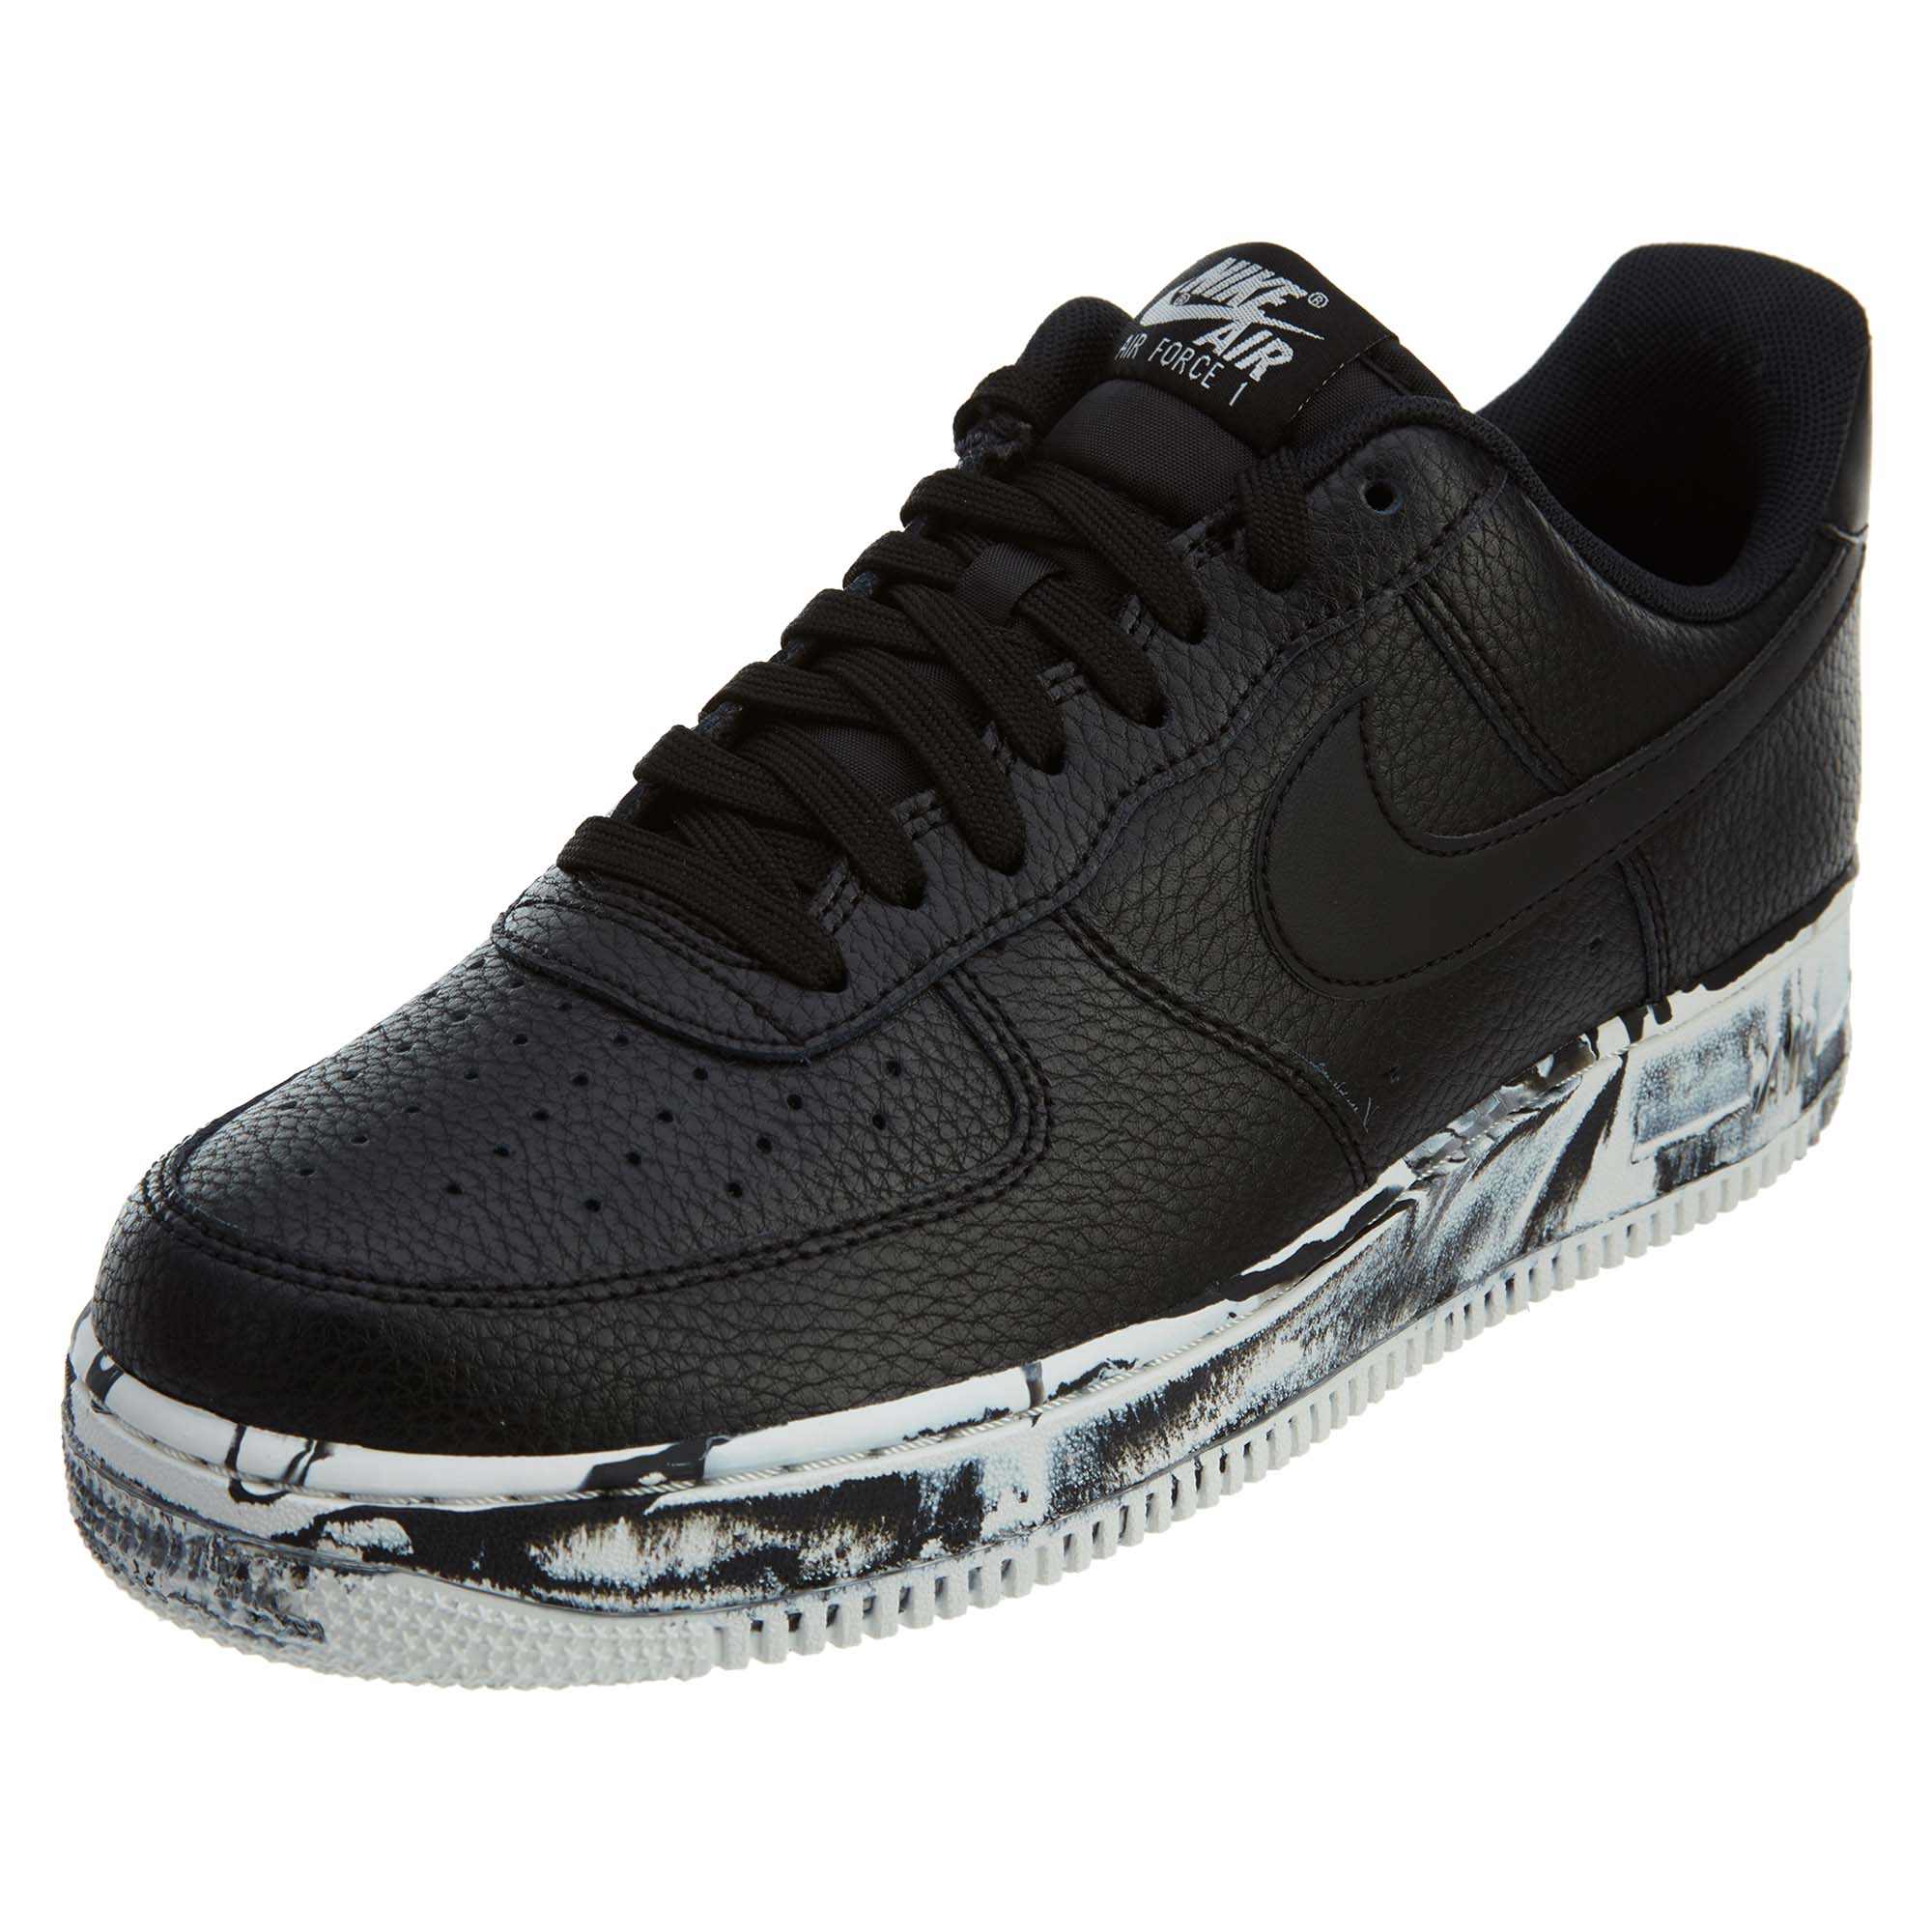 san francisco b194c 793f1 Details about Nike Mens Air Force 1 '07 Lv8 Leather Running Shoes AJ9507-001